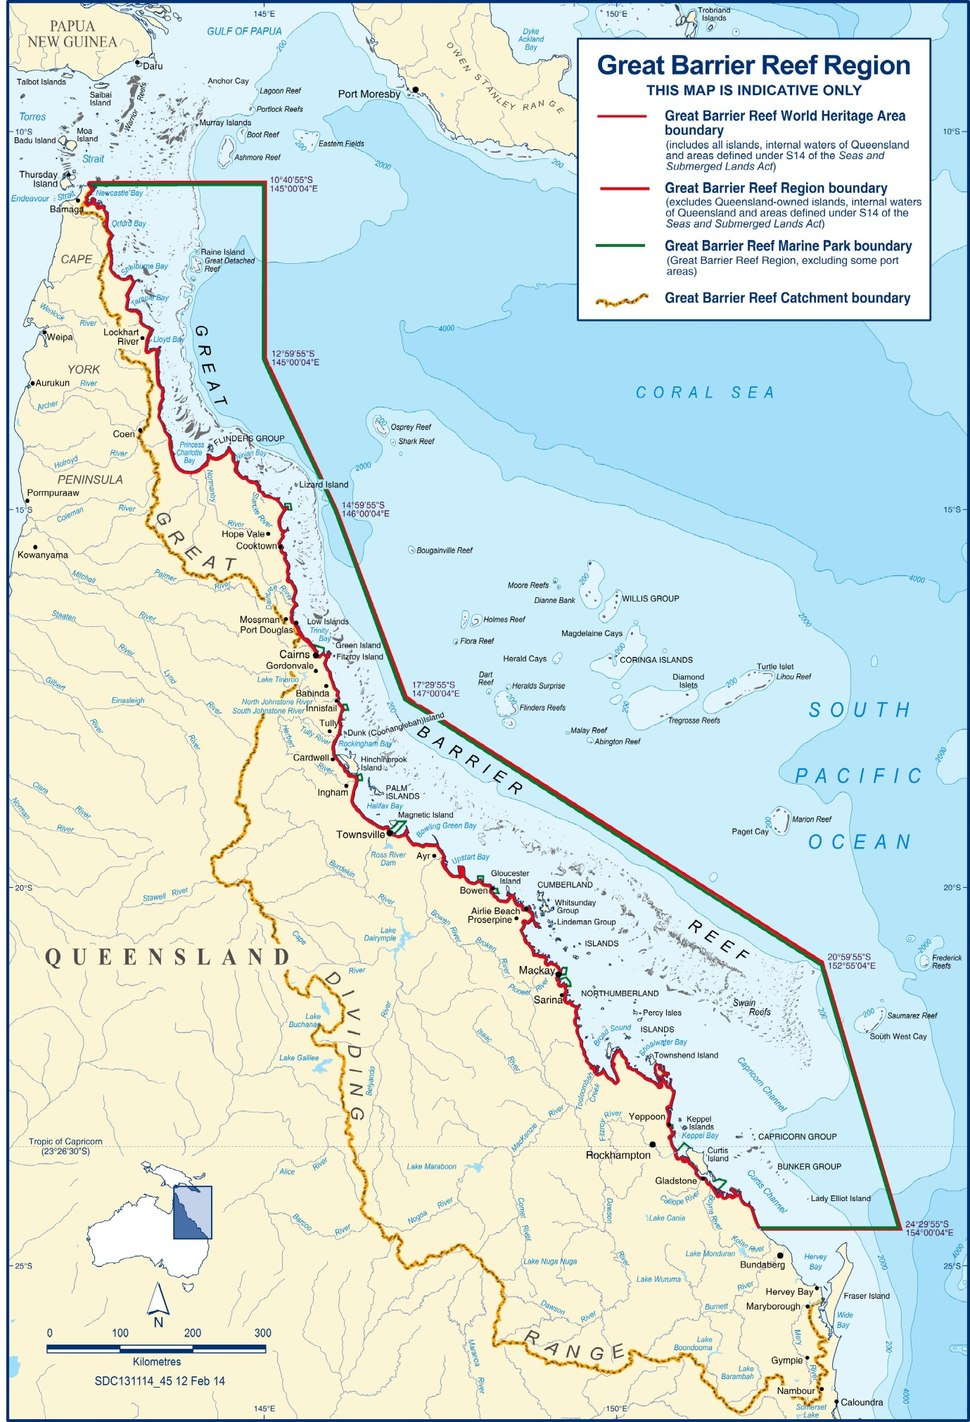 Map of The Great Barrier Reef Region, World Heritage Area and Marine Park, 2014